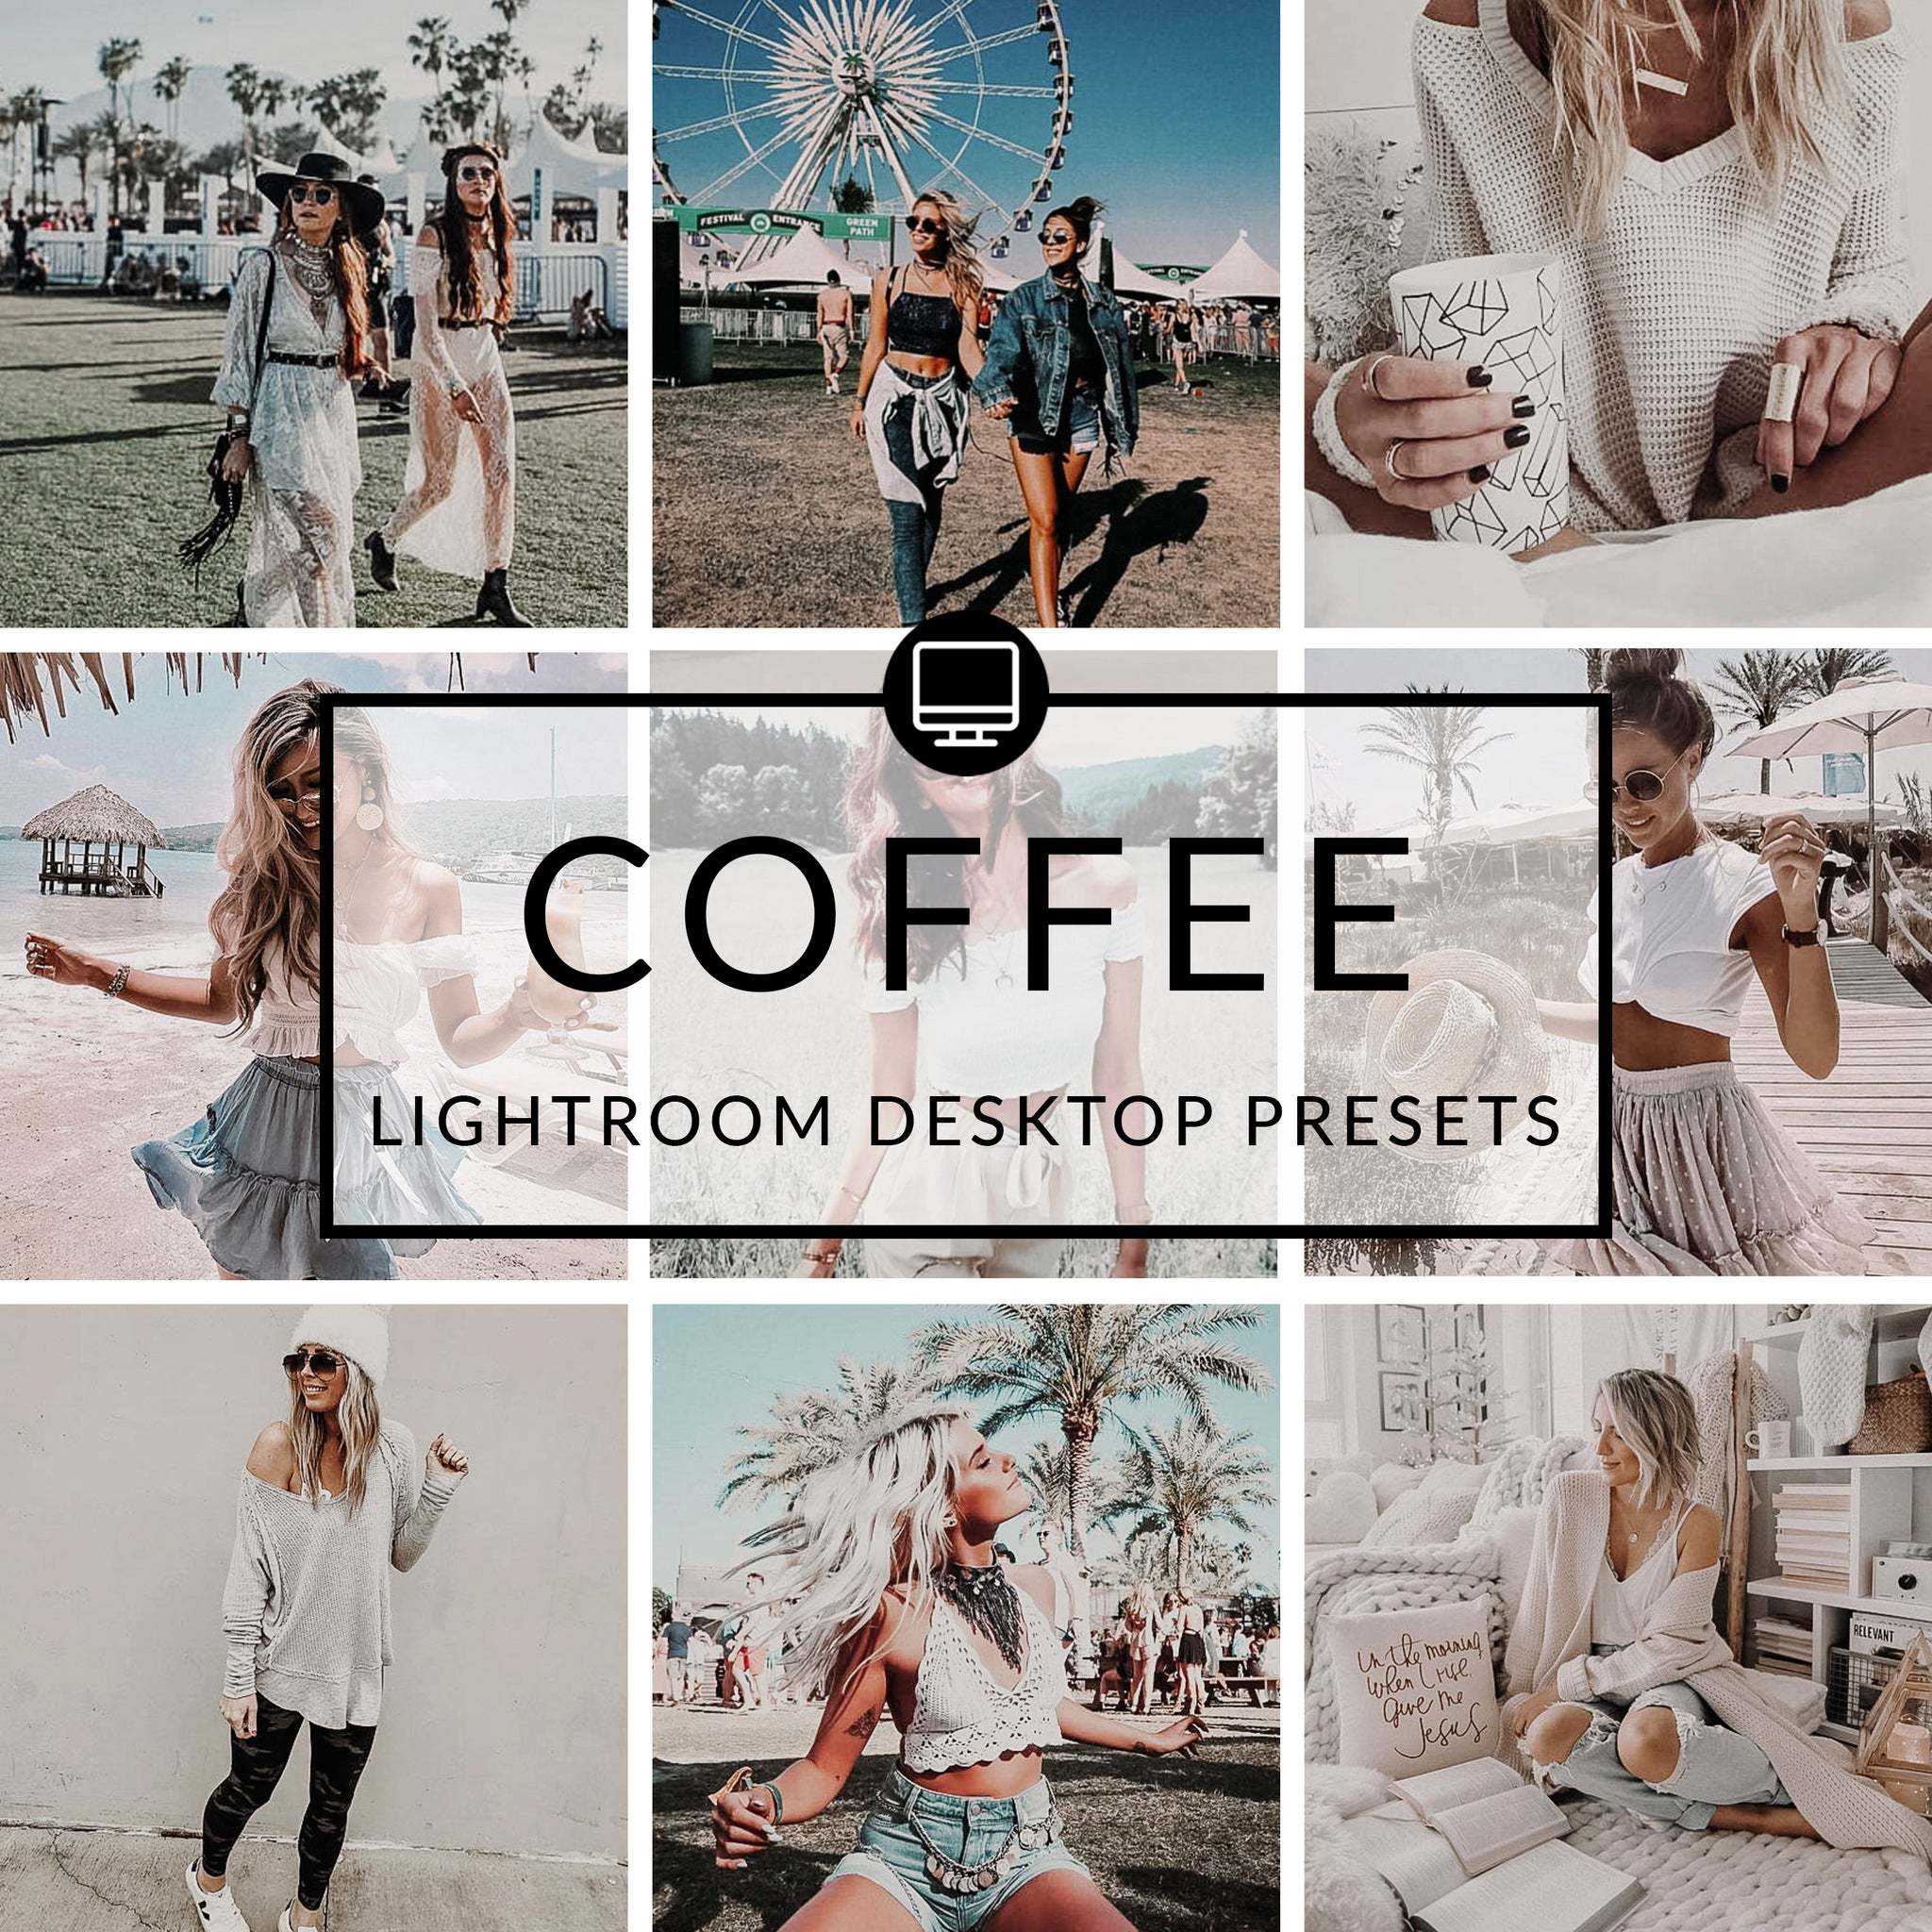 Coffee Lightroom Preset